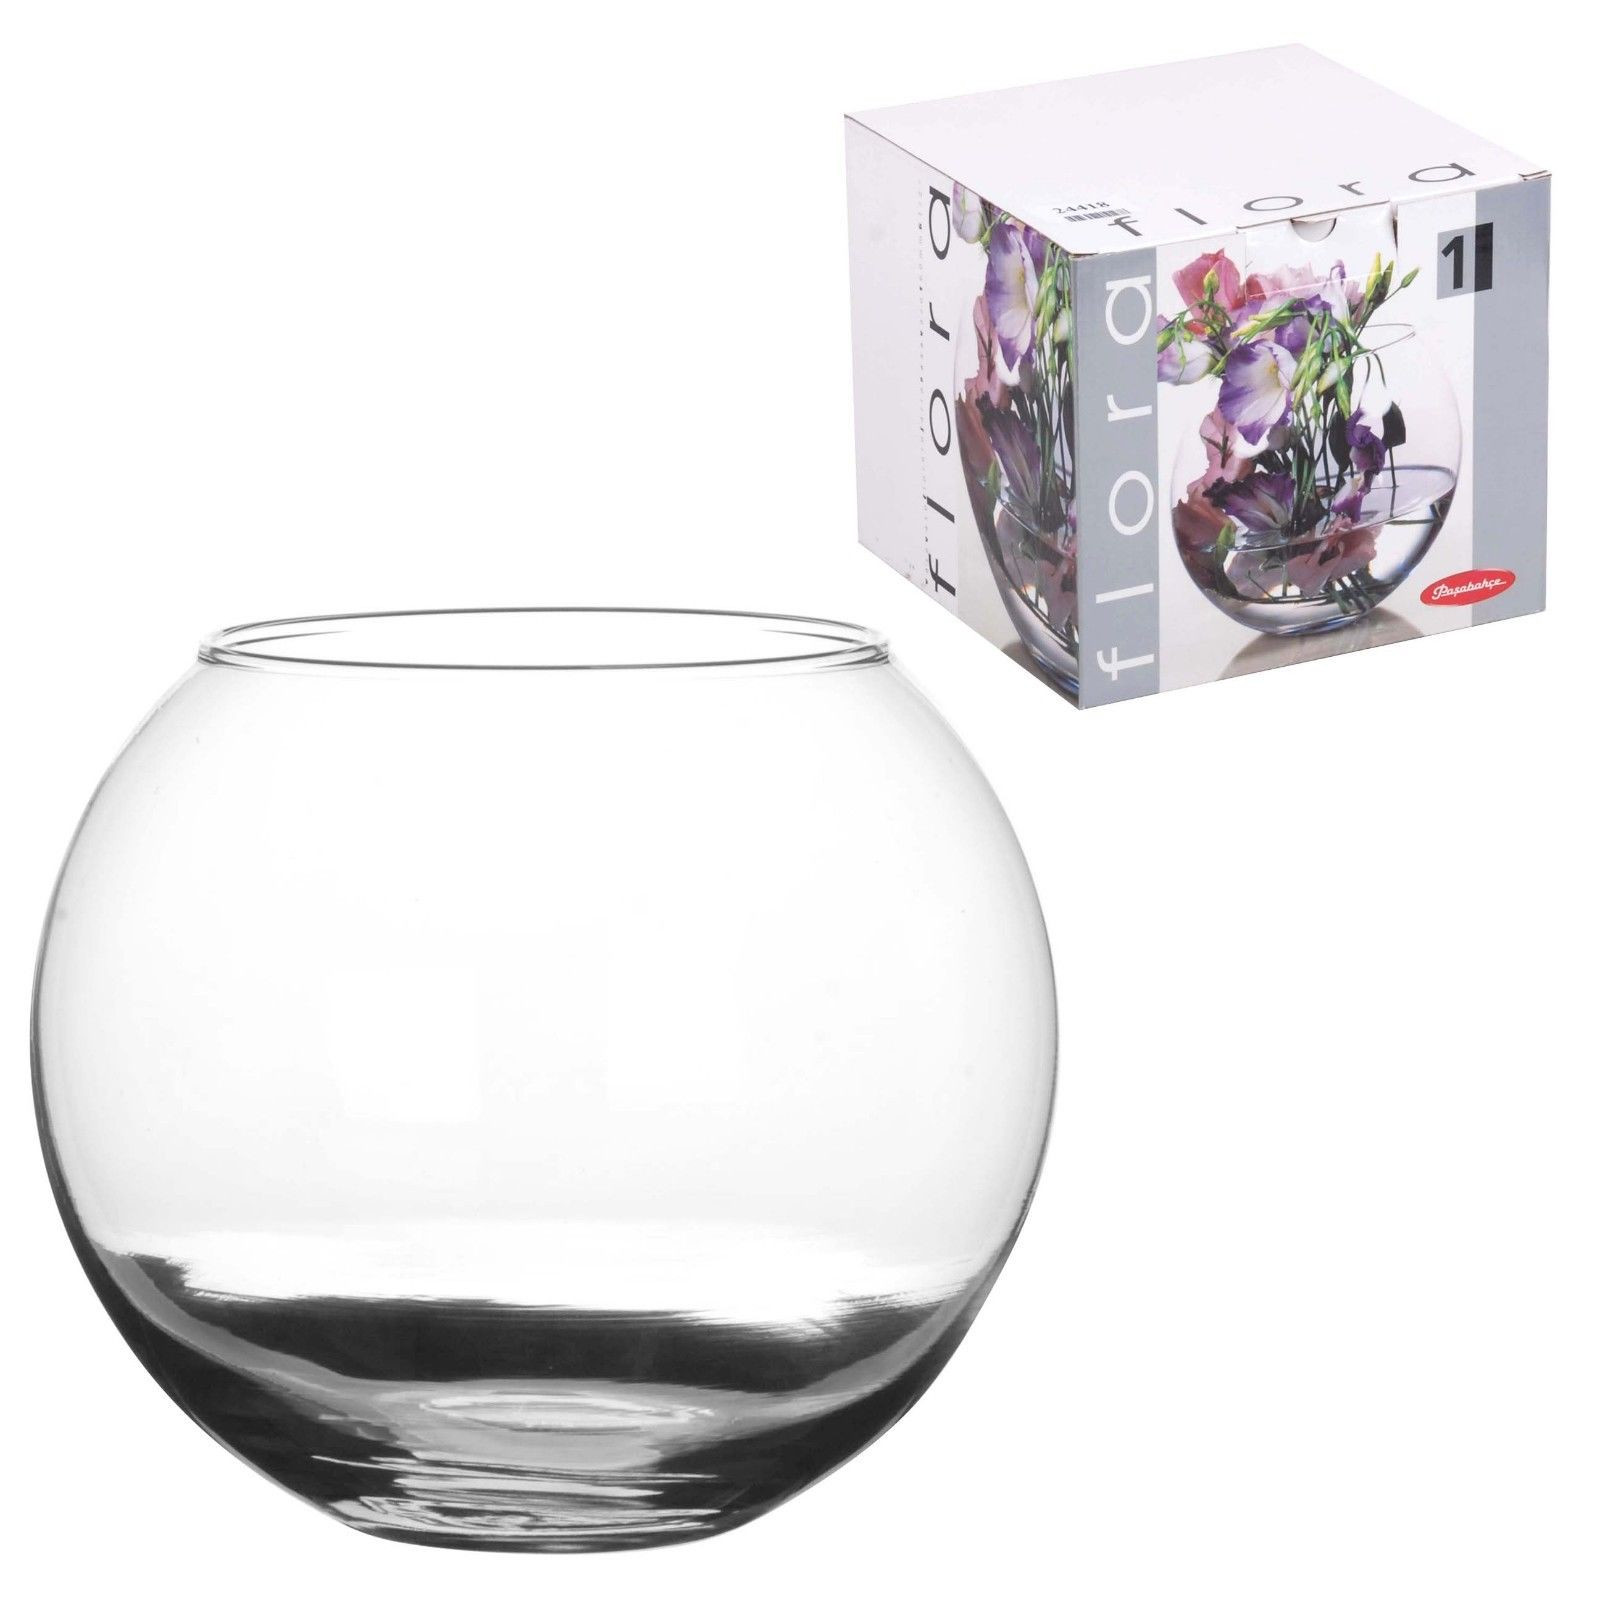 large fish bowl vases wholesale of pasabahce botanica bowl 45068 ebay with norton secured powered by verisign